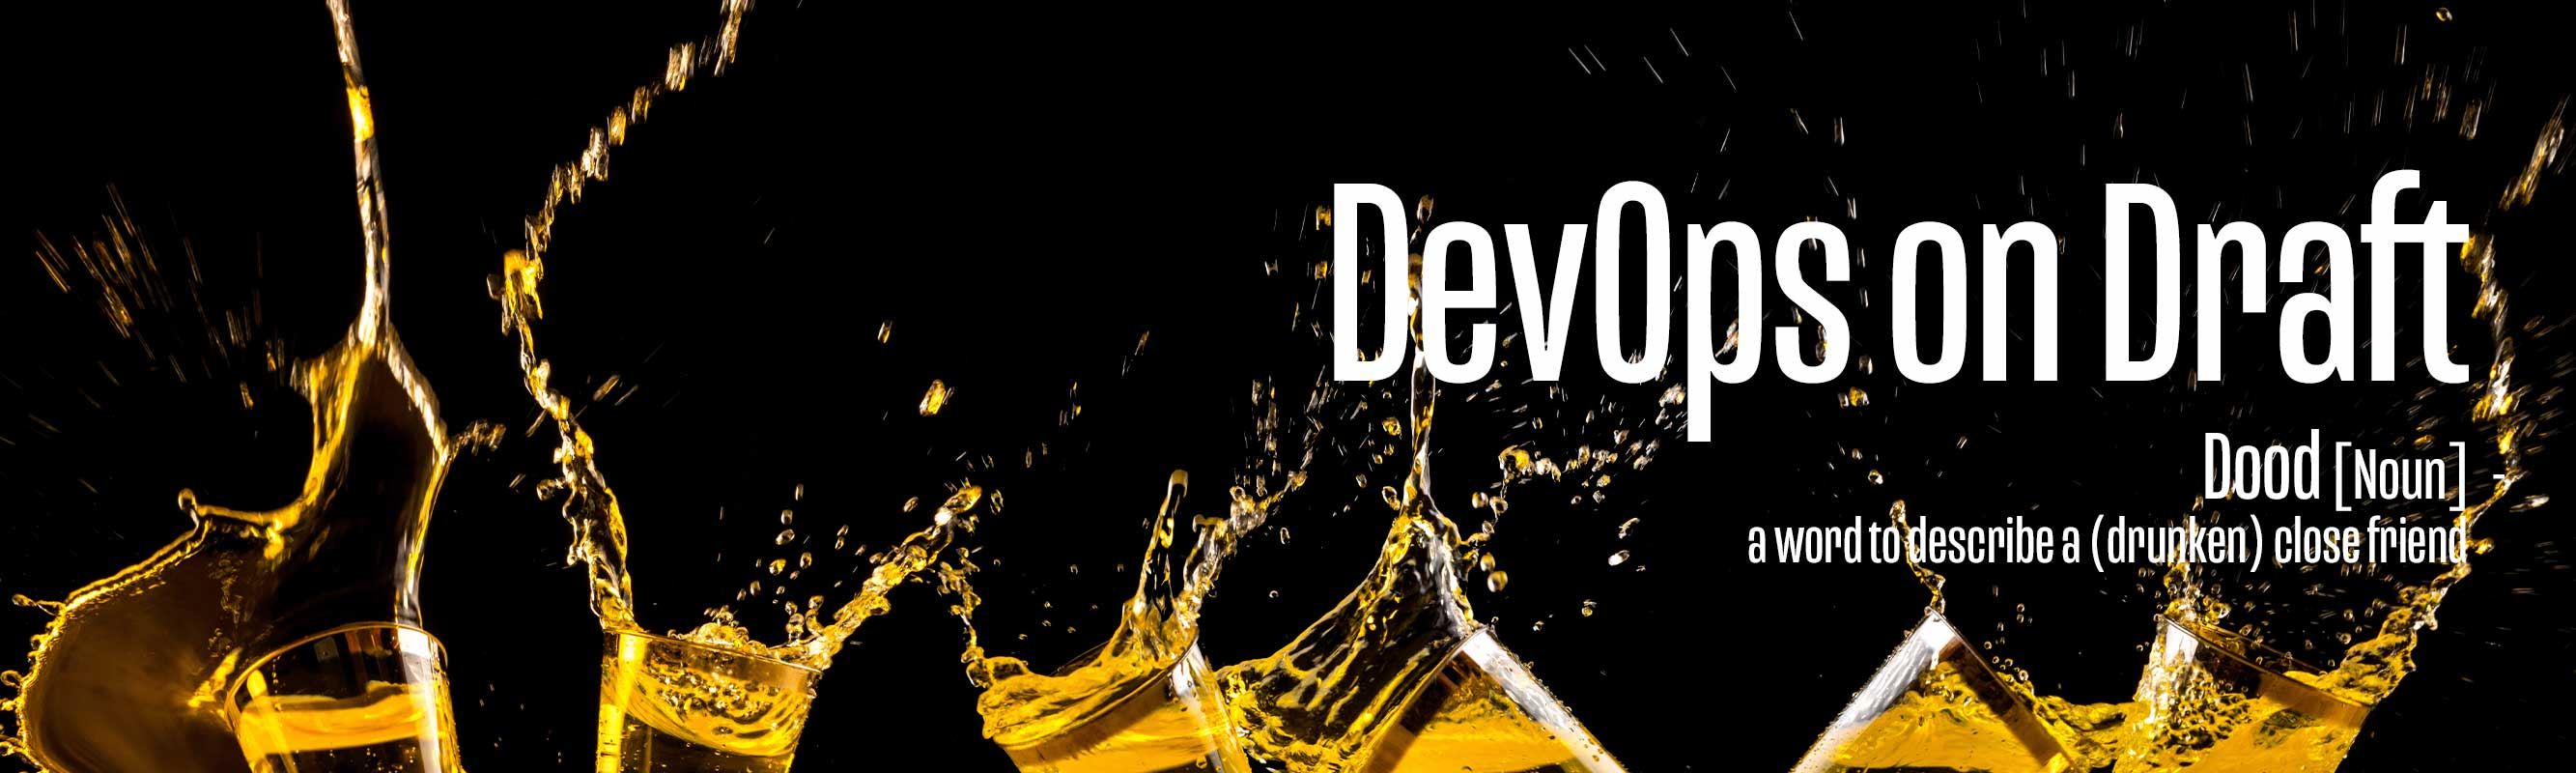 DevOps on Draft What is DOOD HATech event